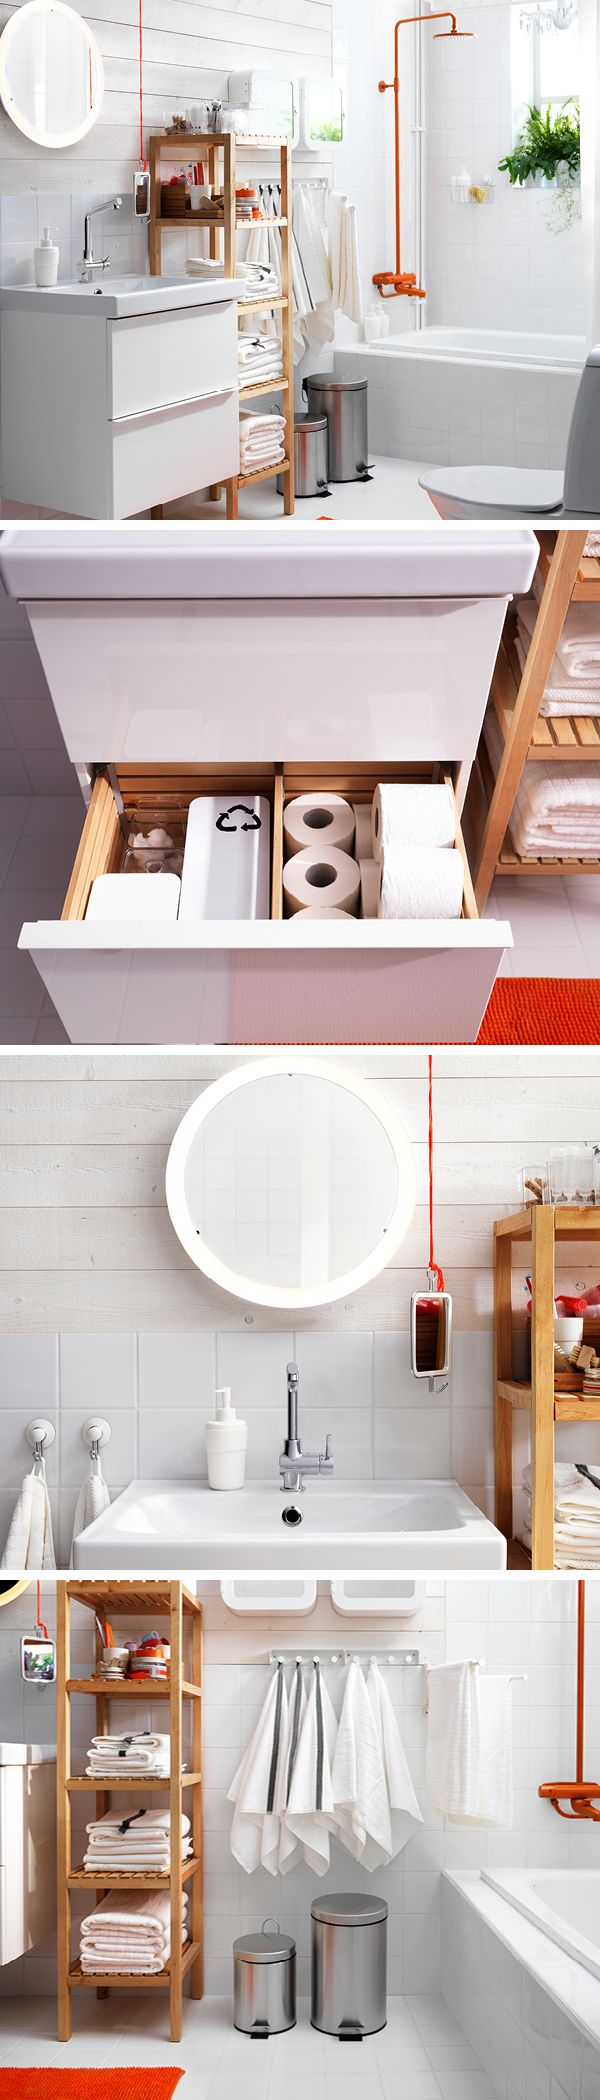 Every member of the family uses the bathroom - thinking sustainably can make a big difference. Small containers in a drawer can be used to sort small waste items like cotton balls and bottle tops. Switch to LED lighting, which uses up to 85% less energy can last for up to 20 years. Choose taps with in-built water saving features, and make sure they're turned off when not in use - a dripping tap can fill a bathtub in a day. Recycling bins can be used to sort larger waste items such as…